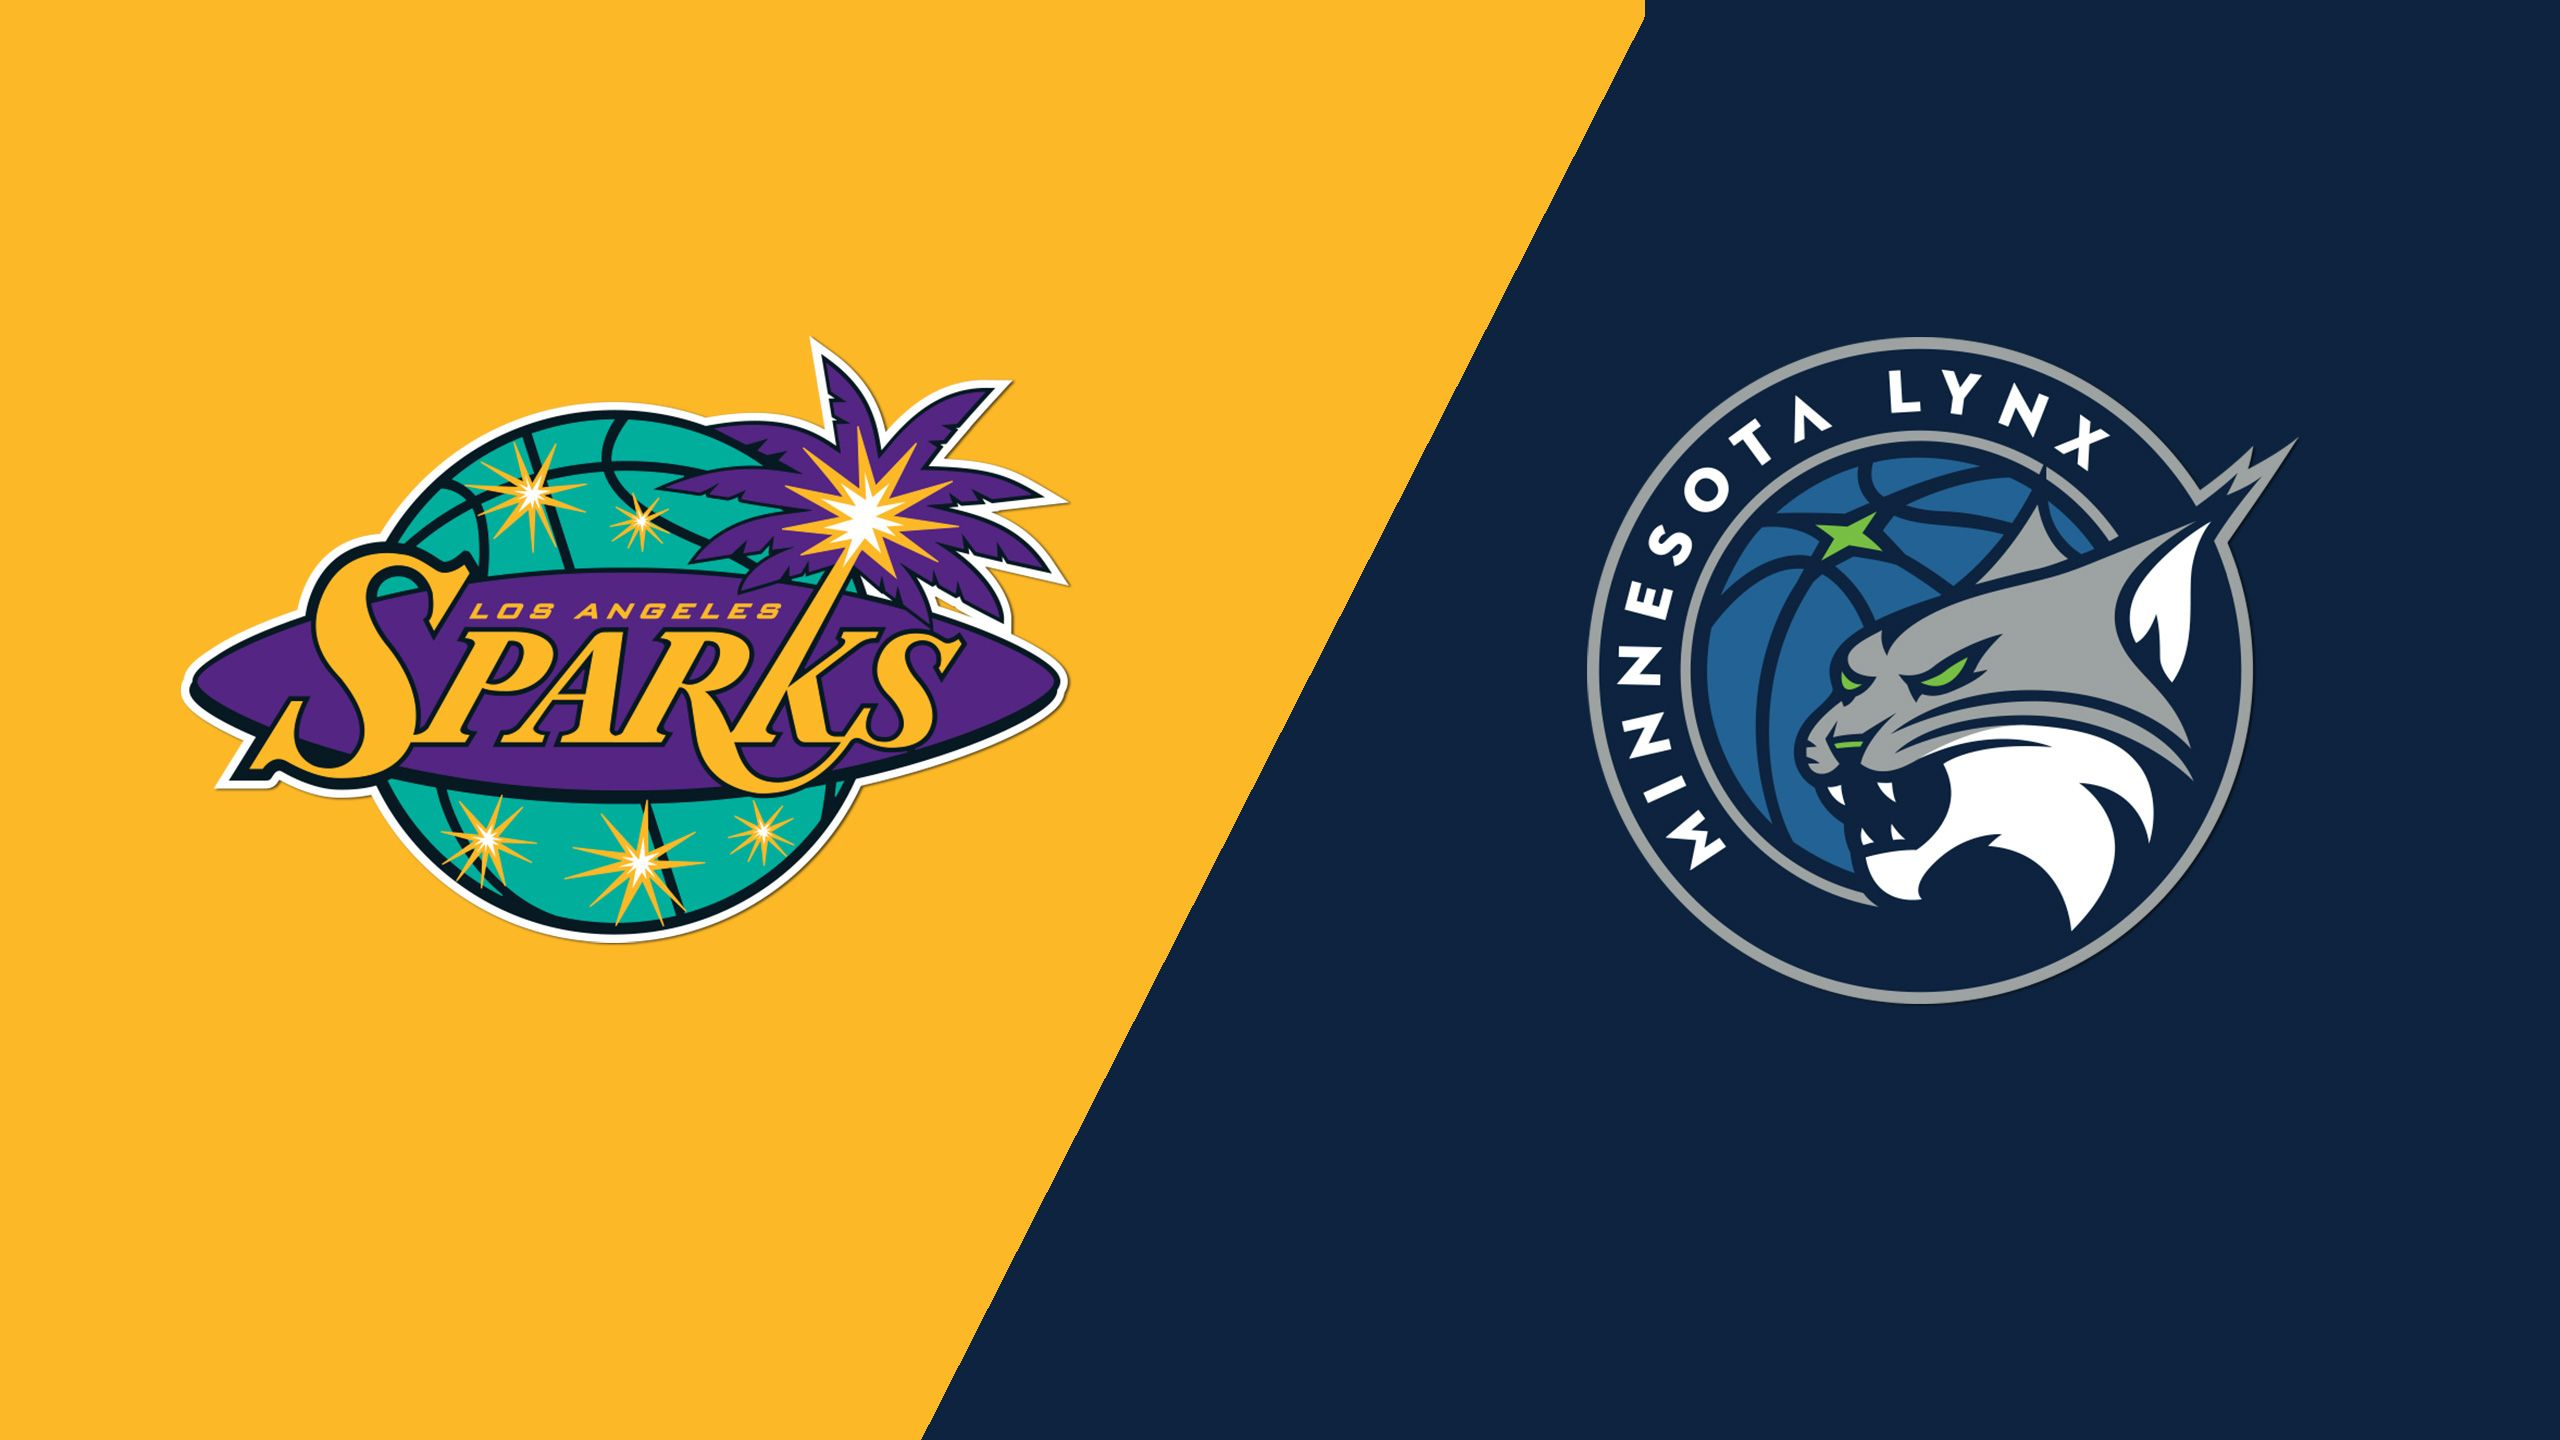 Los Angeles Sparks vs. Minnesota Lynx